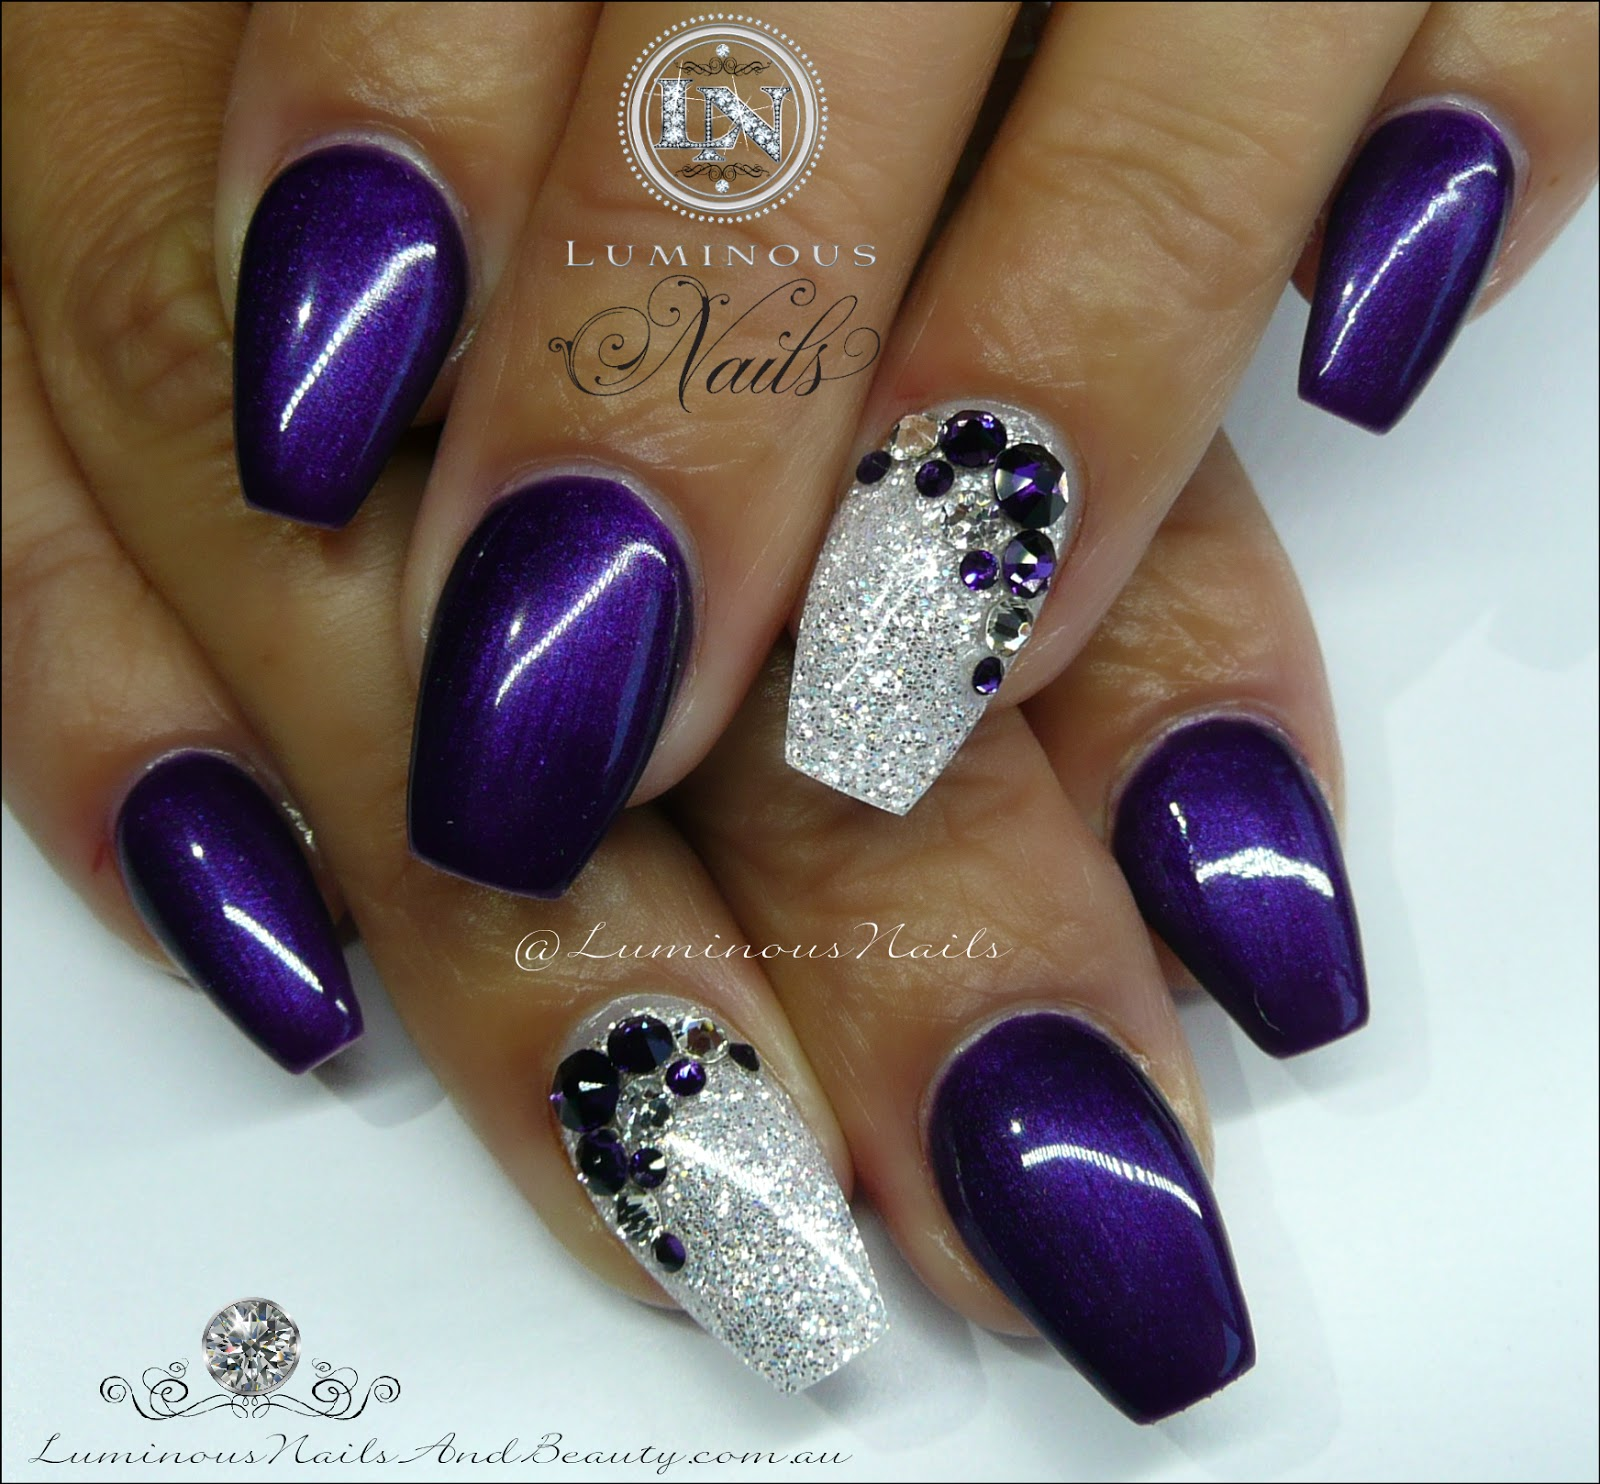 Nail designs purple white about purple nails on shellac nail view images purple and white nails acrylic gel nail art designs prinsesfo Images